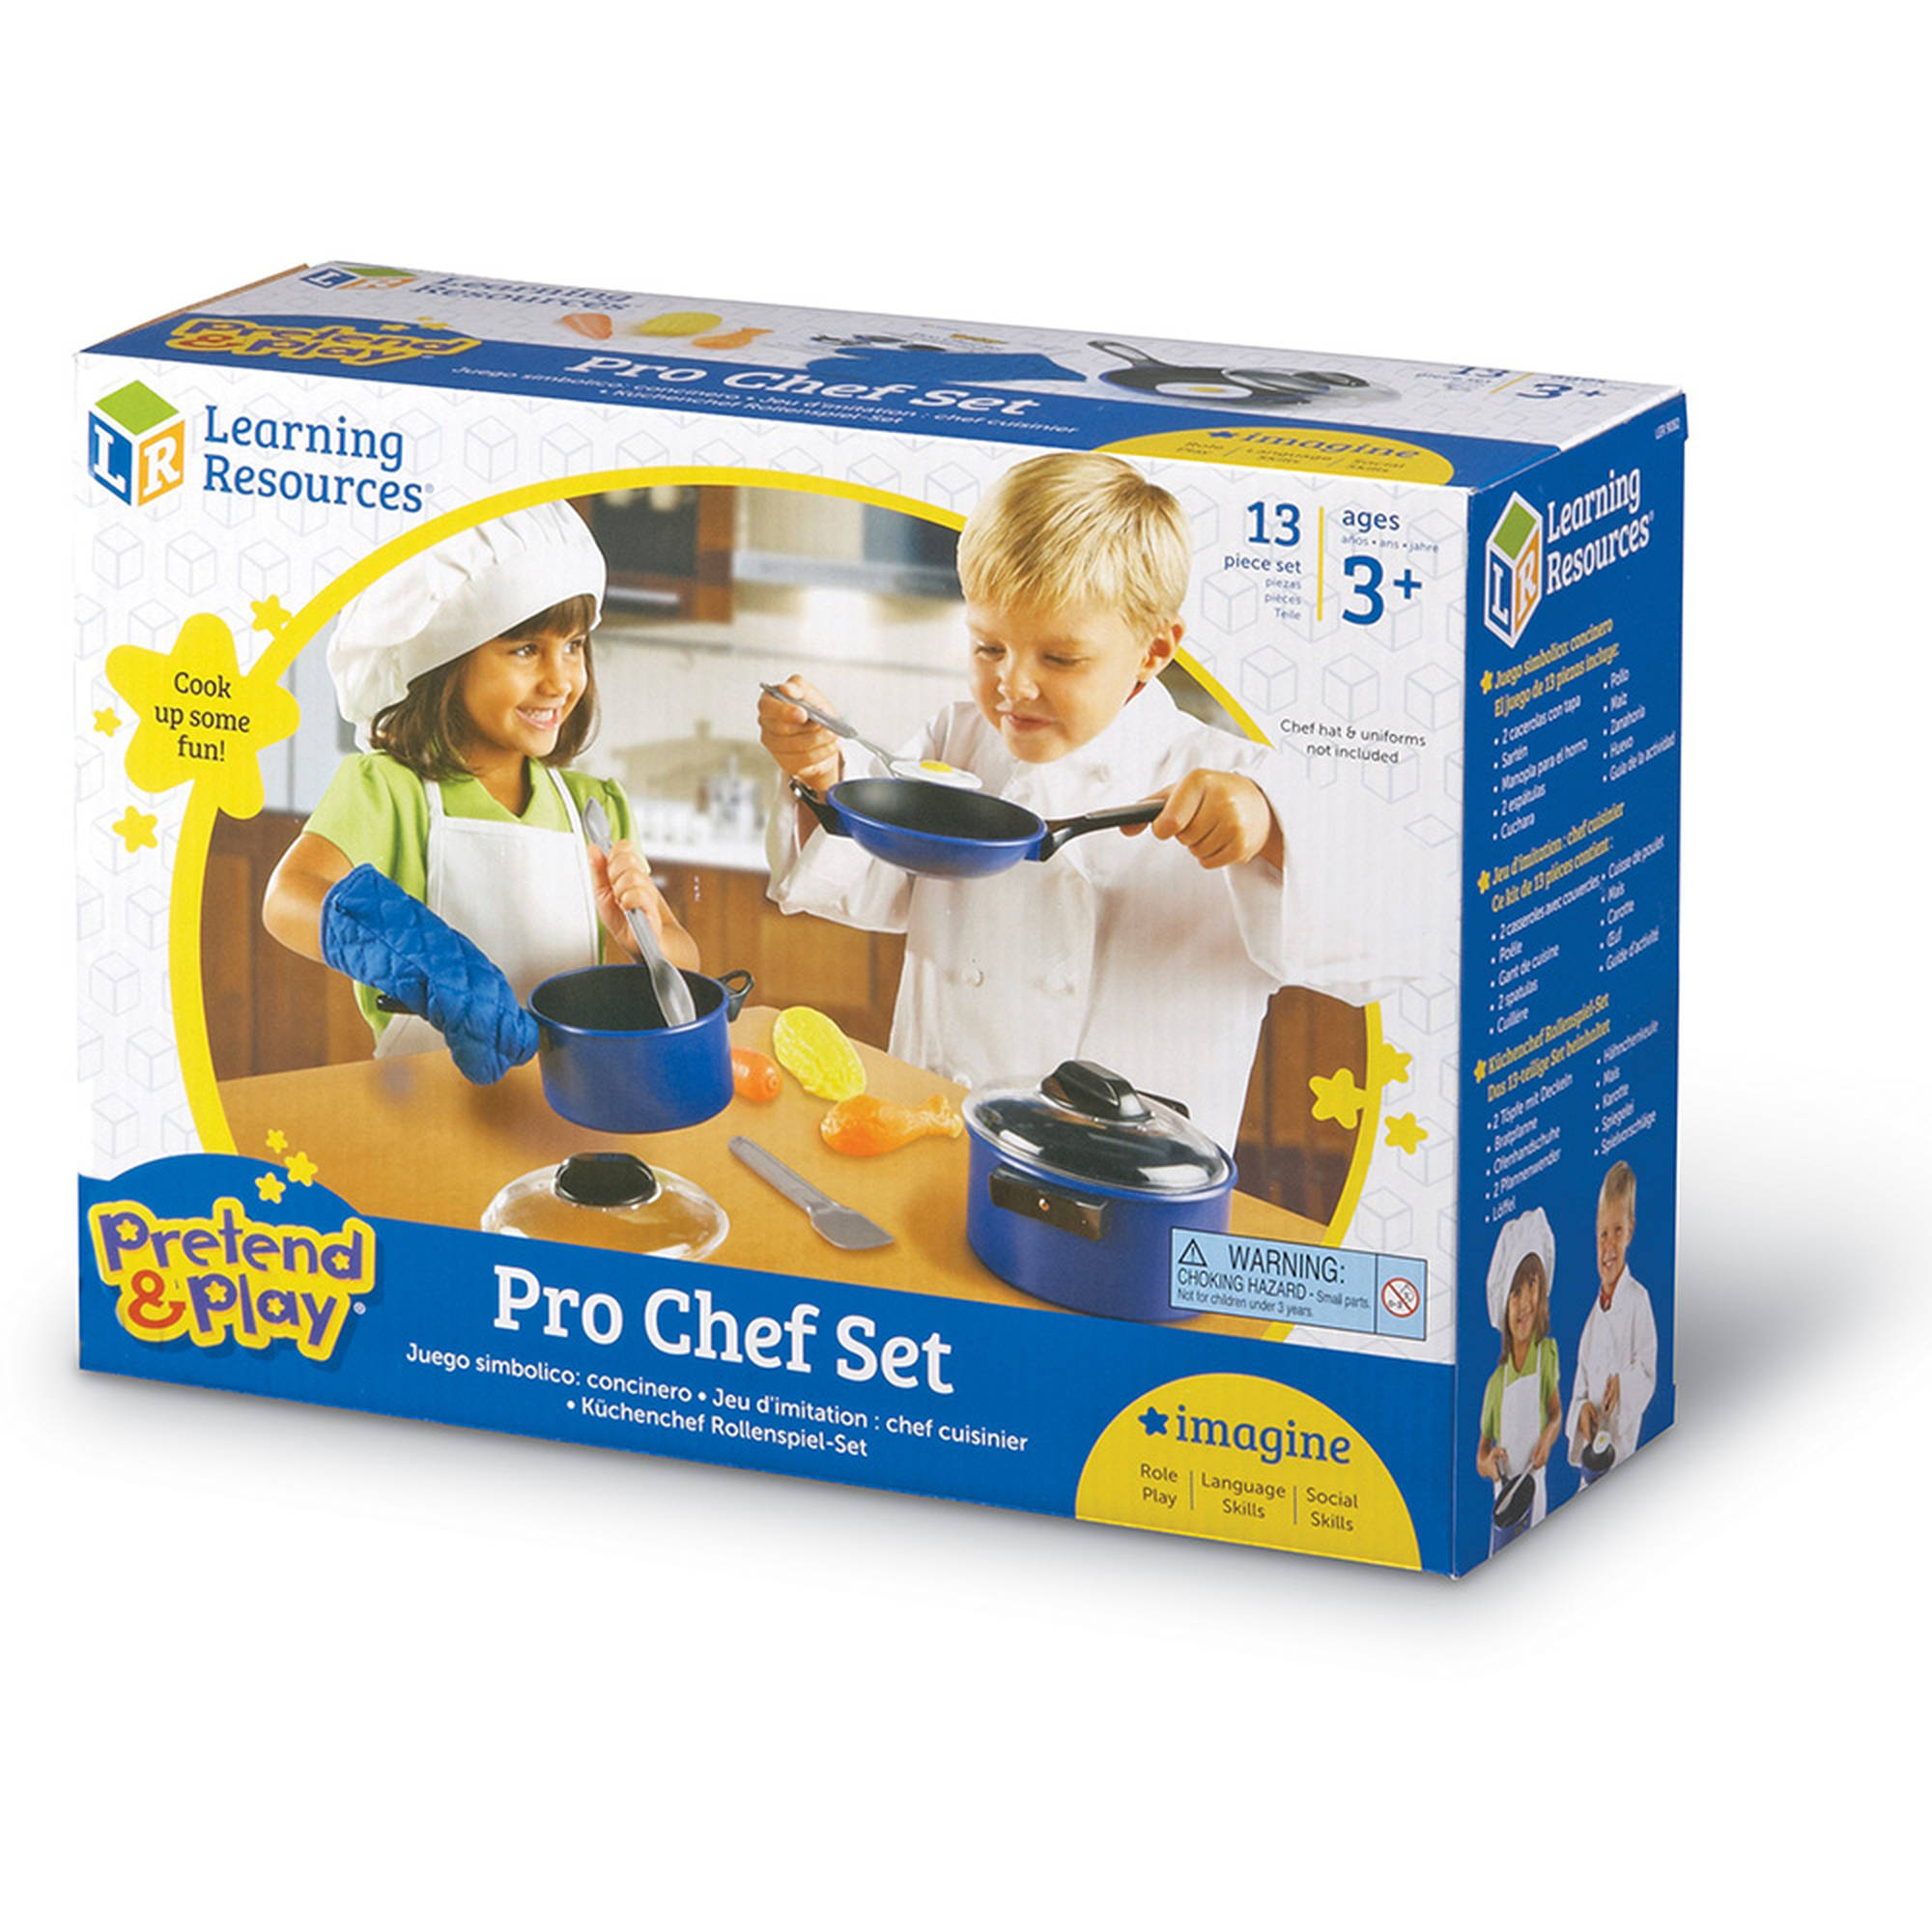 Küchenchefs Tv Now Pretend And Play Pro Chef Set Walmart